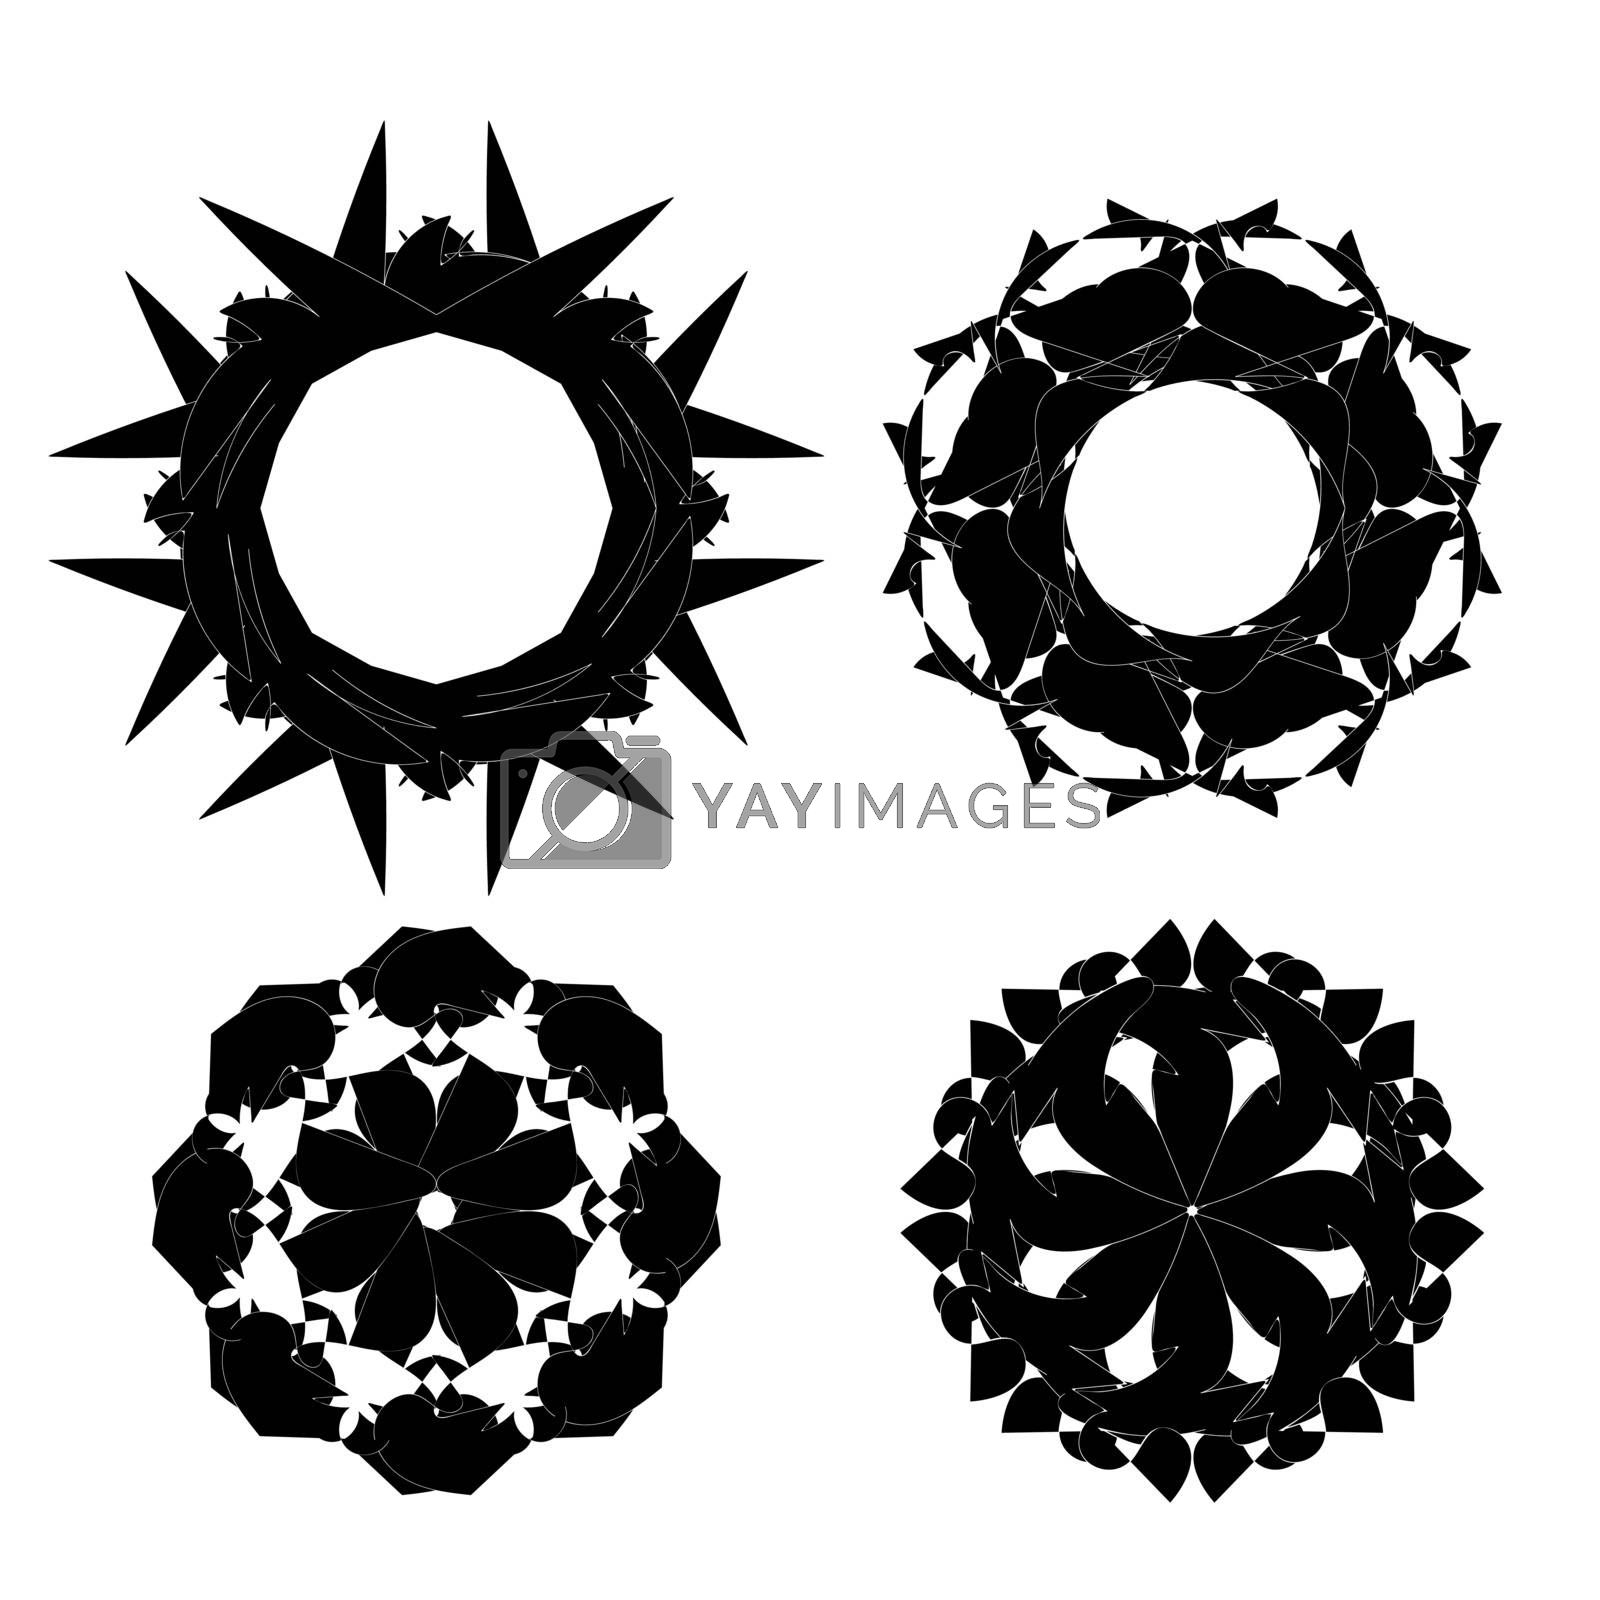 Set of Blacck Ornaments Isolated on White Background